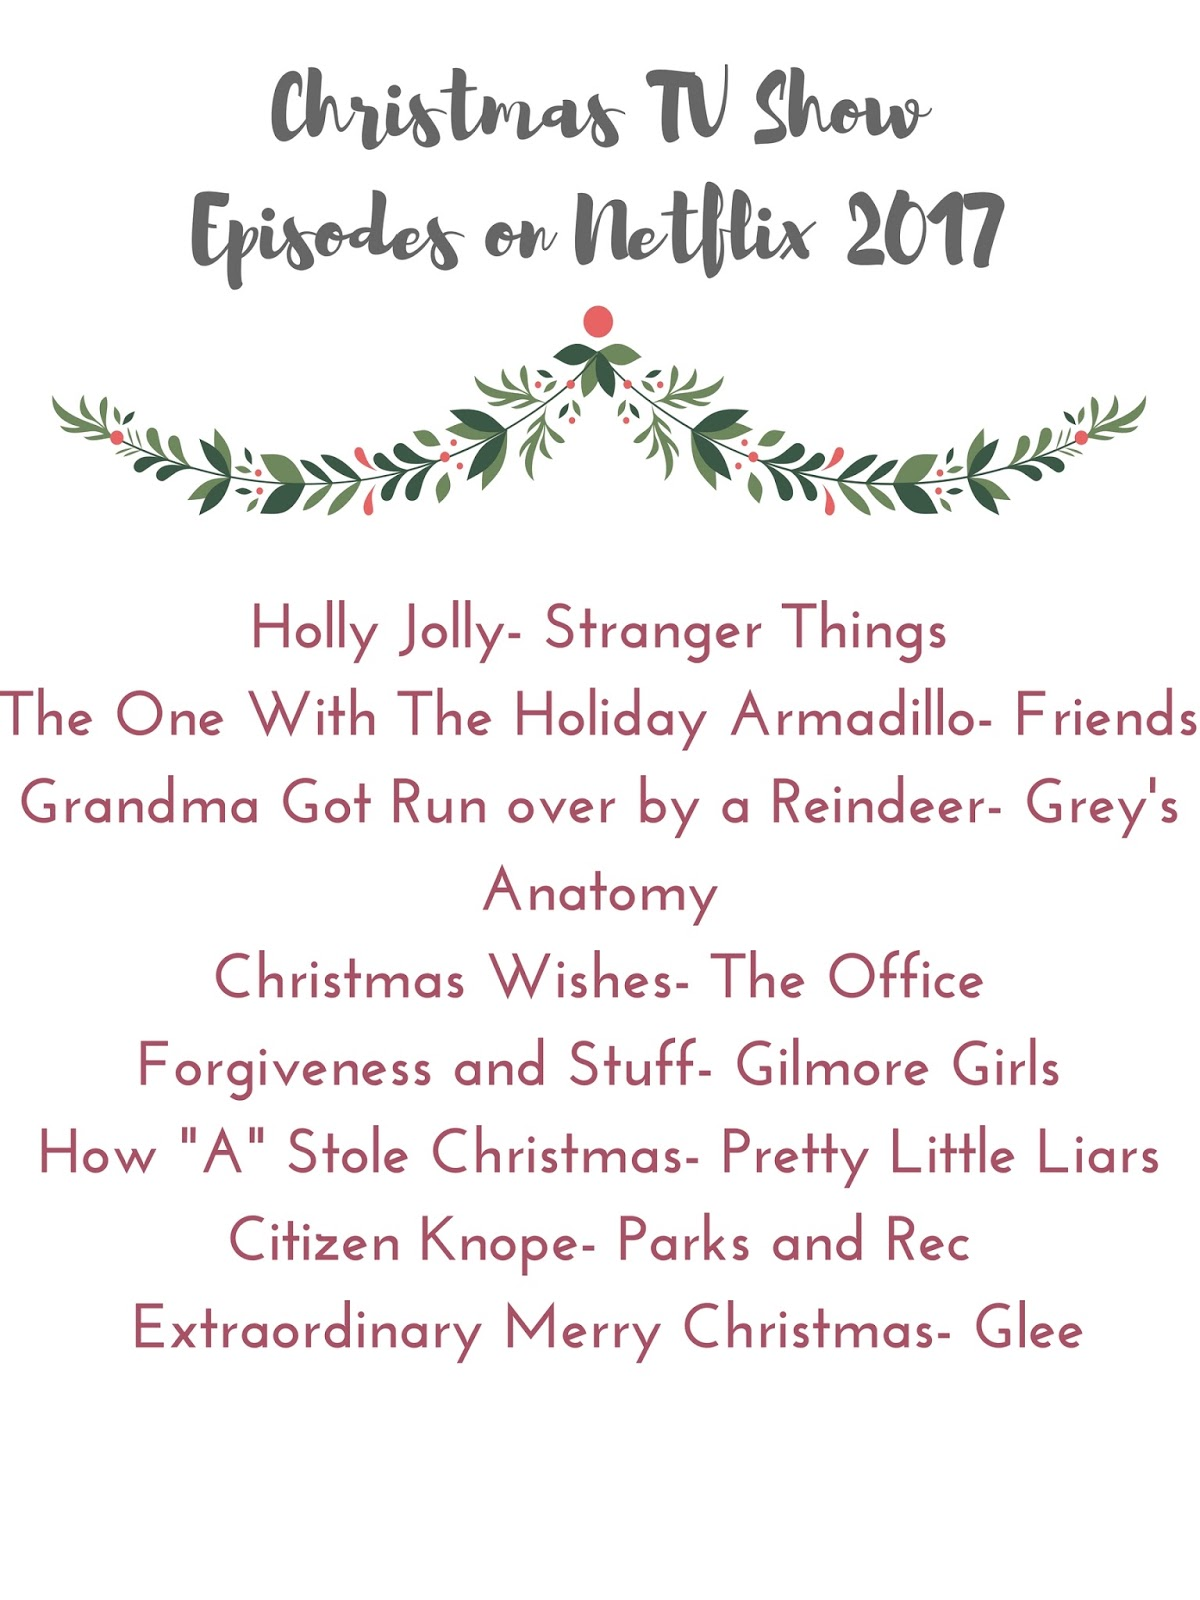 preppystyle: Christmas TV Shows on Netflix